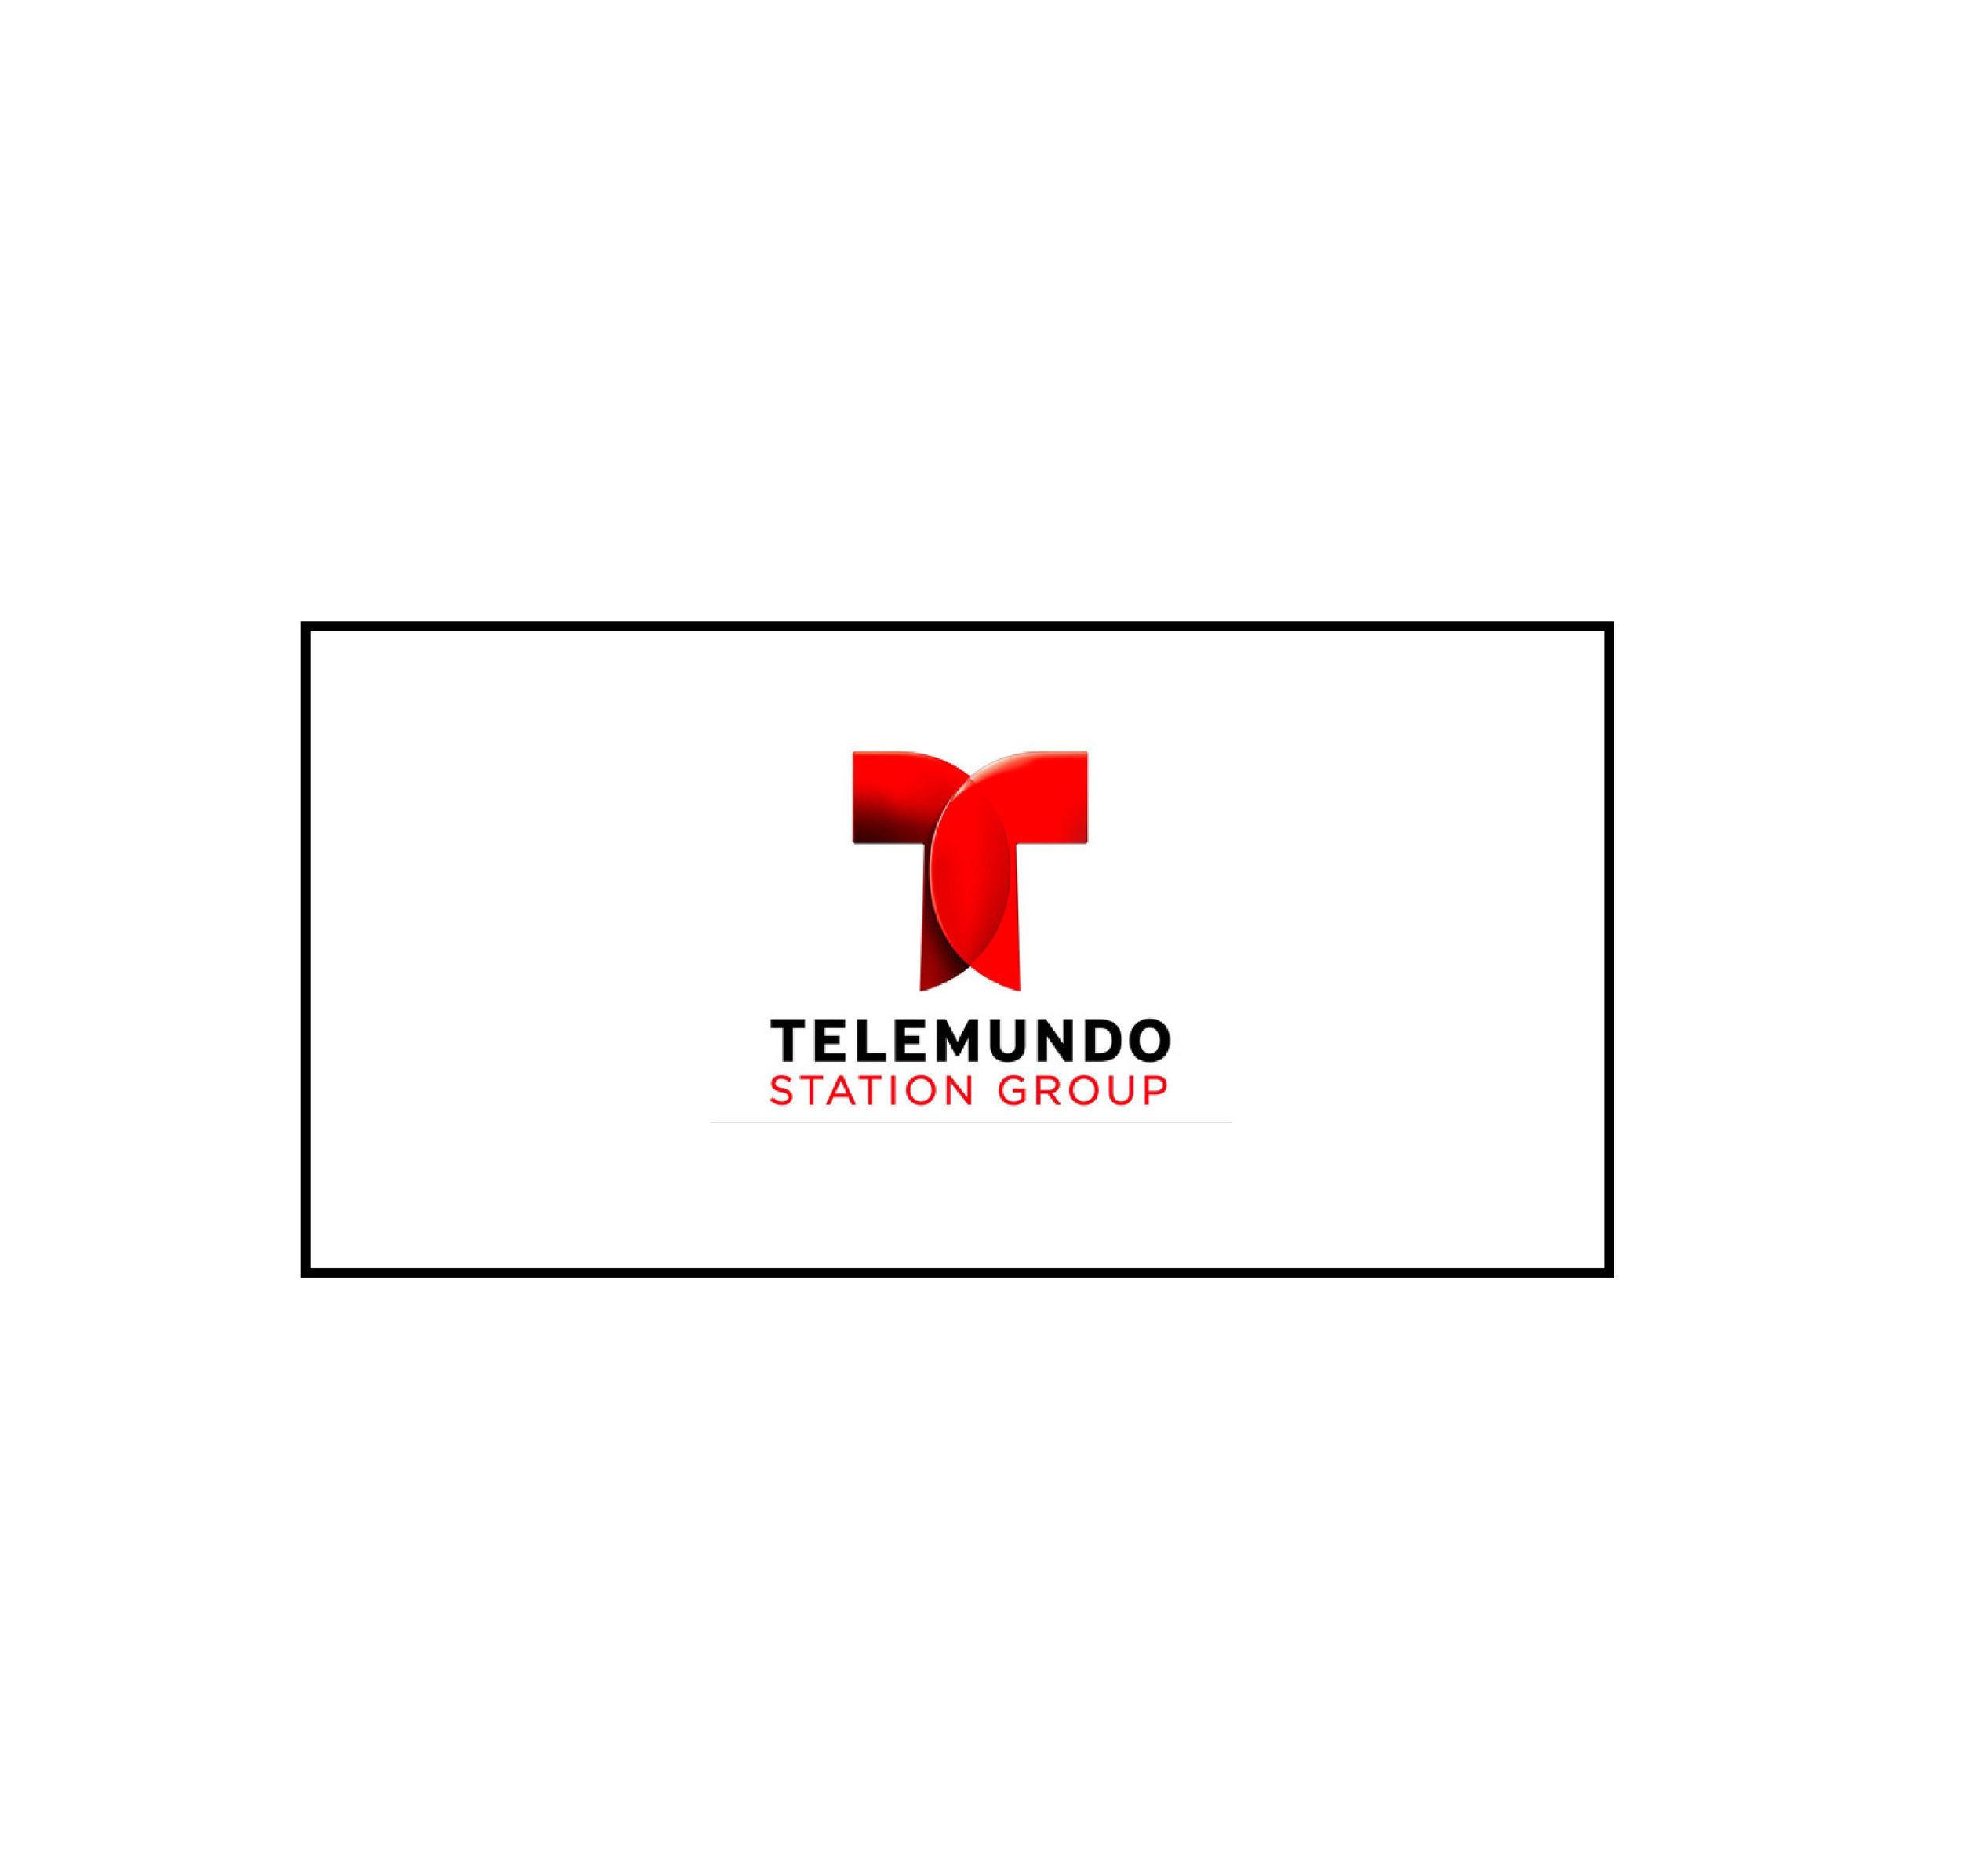 _TELEMUNDO STATION GROUP.jpg